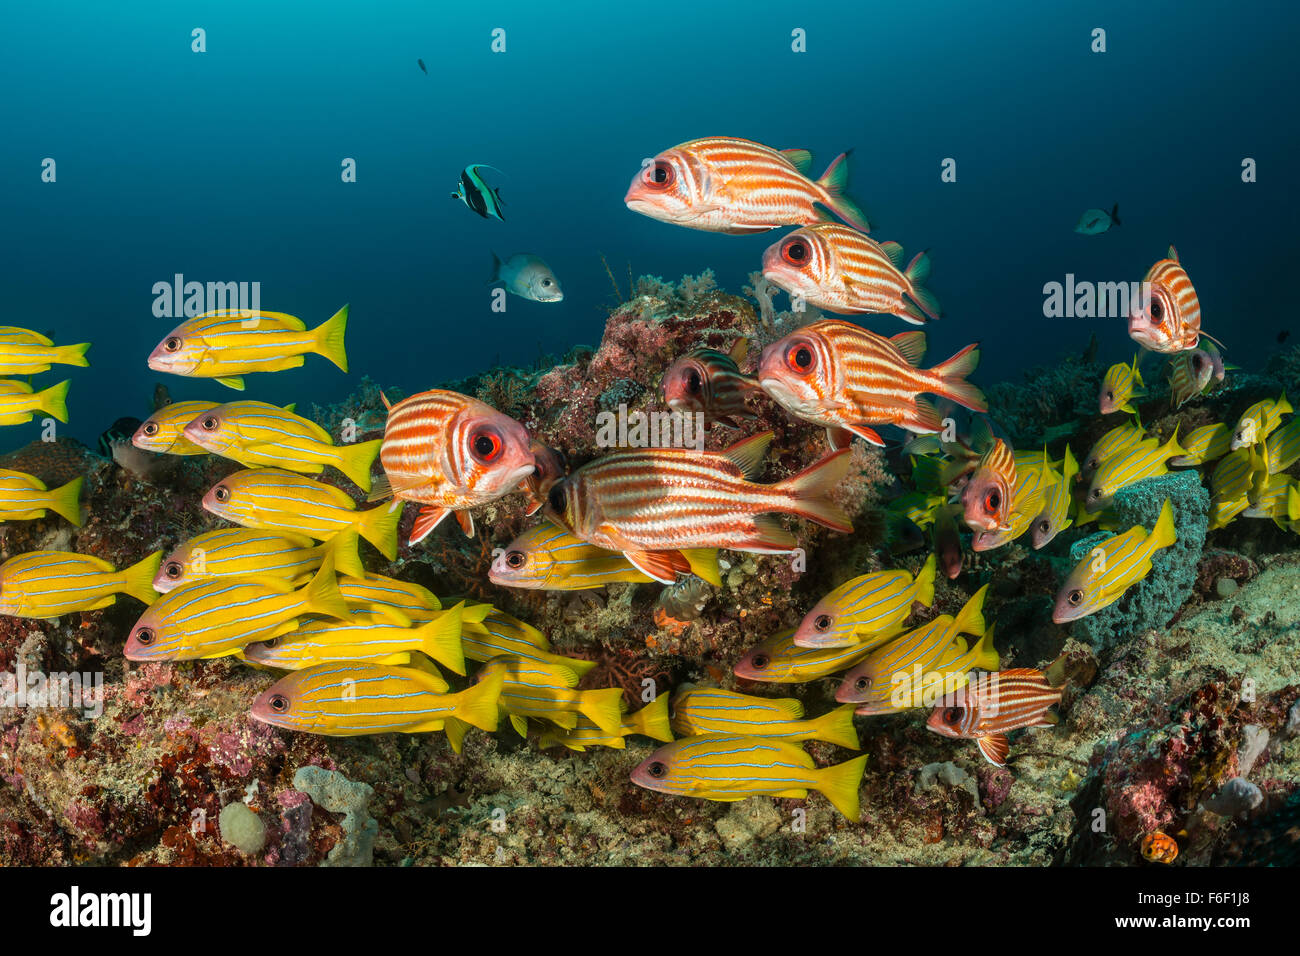 Shoal of Five-lined Snapper and Red Squirrelfish, Lutjanus quinquelineatus, Sargocentron rubrum, Raja Ampat, Indonesia Stock Photo